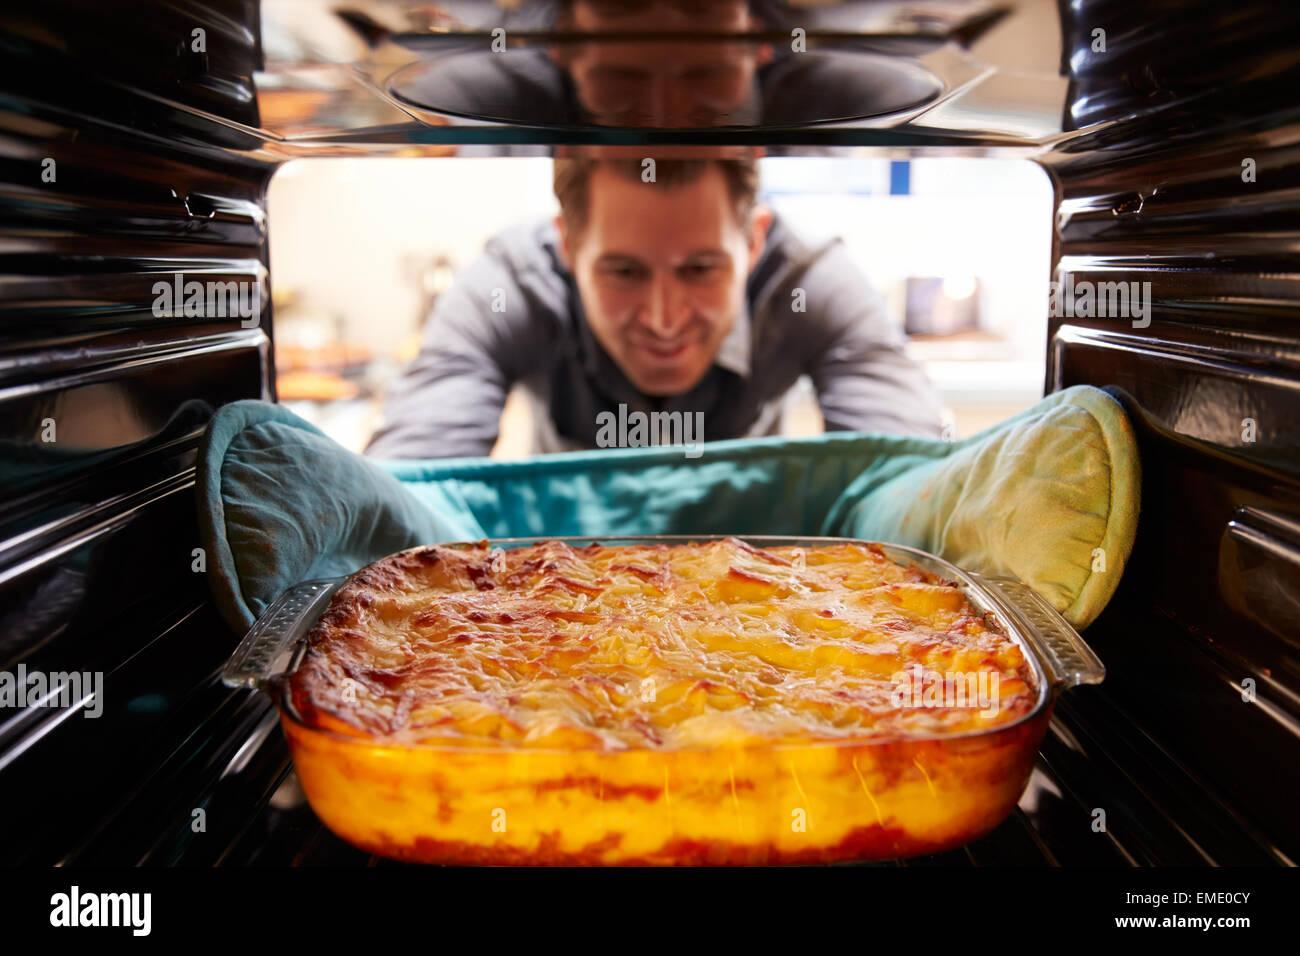 Man Taking Cooked Dish Of Lasagne Out Of The Oven - Stock Image